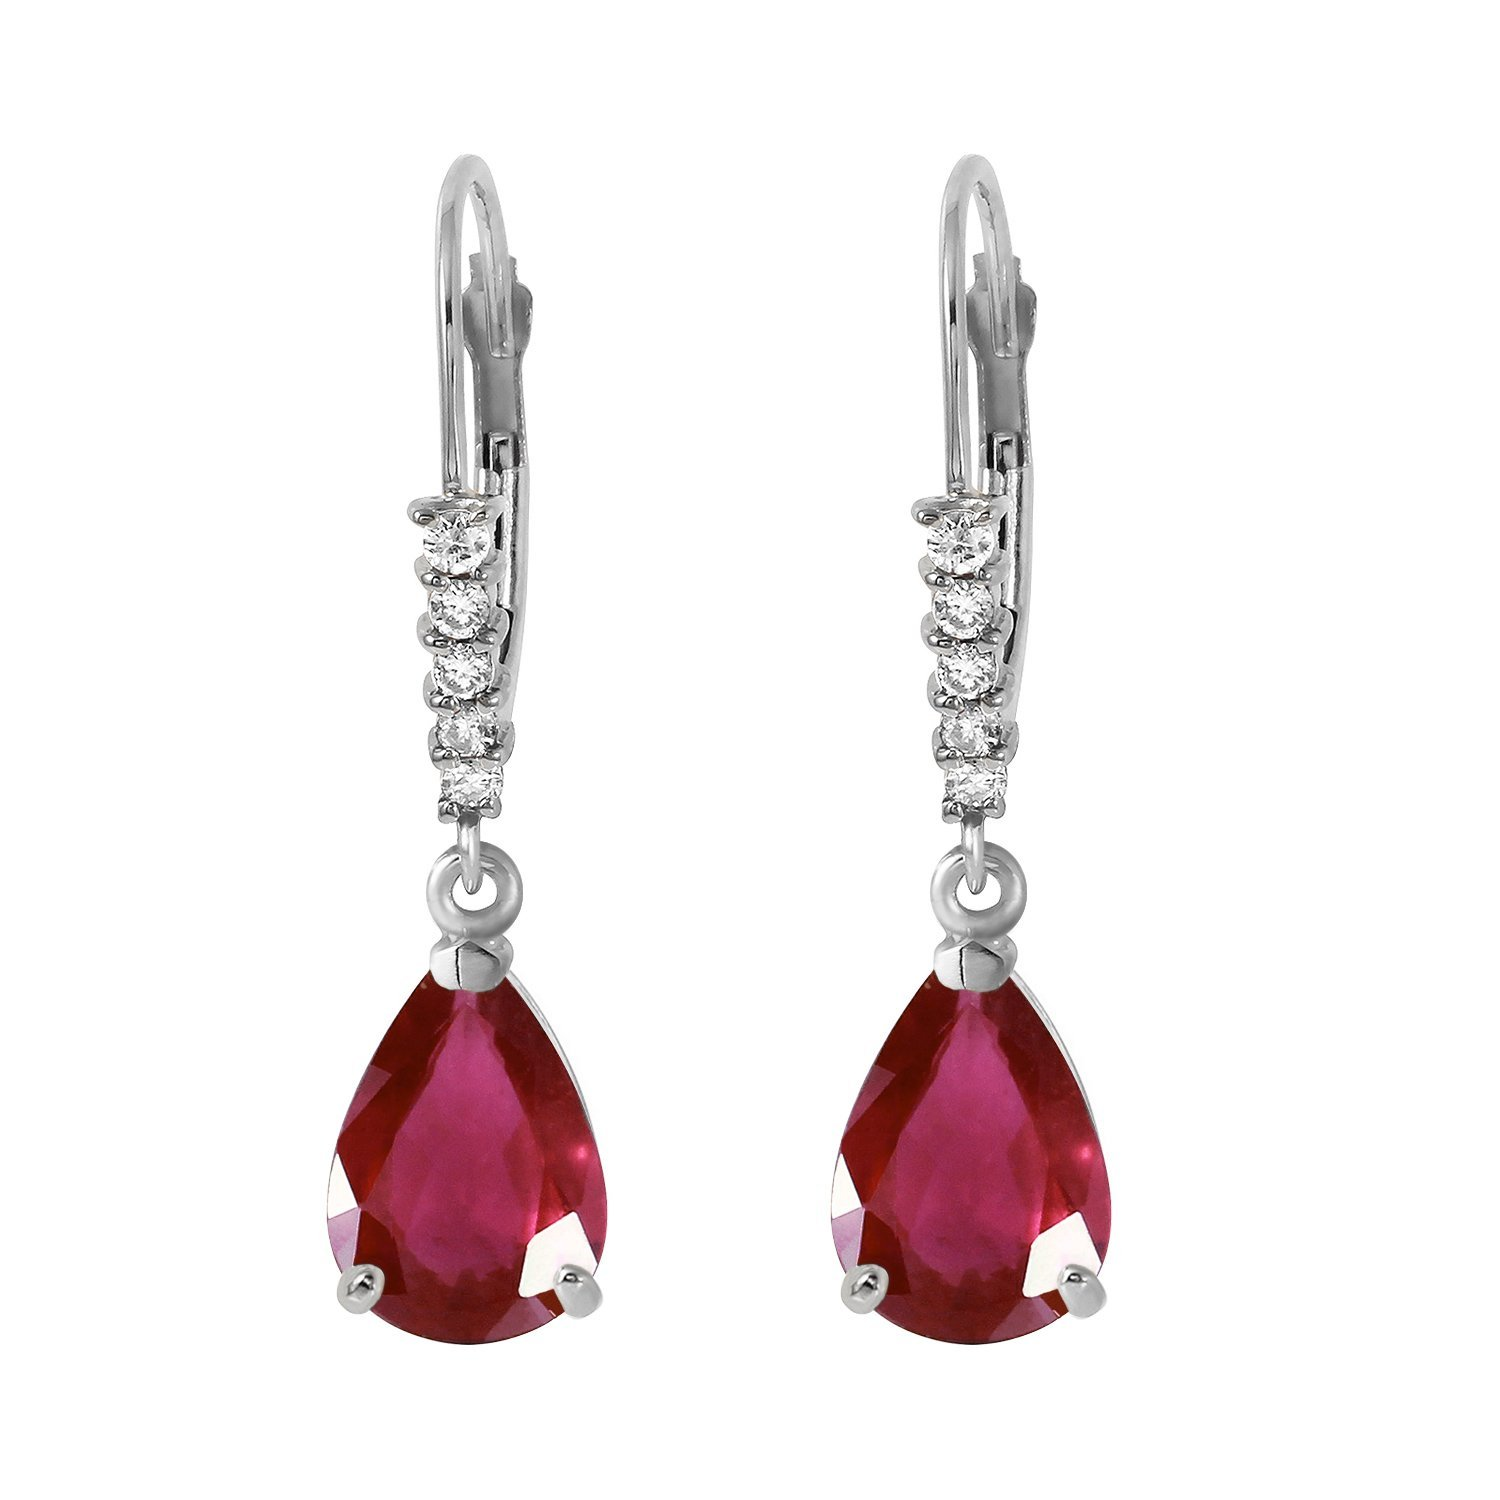 3.15 Carat 14k Solid White Gold Leverback Earrings with Natural Diamonds and Rubies by Galaxy Gold (Image #2)